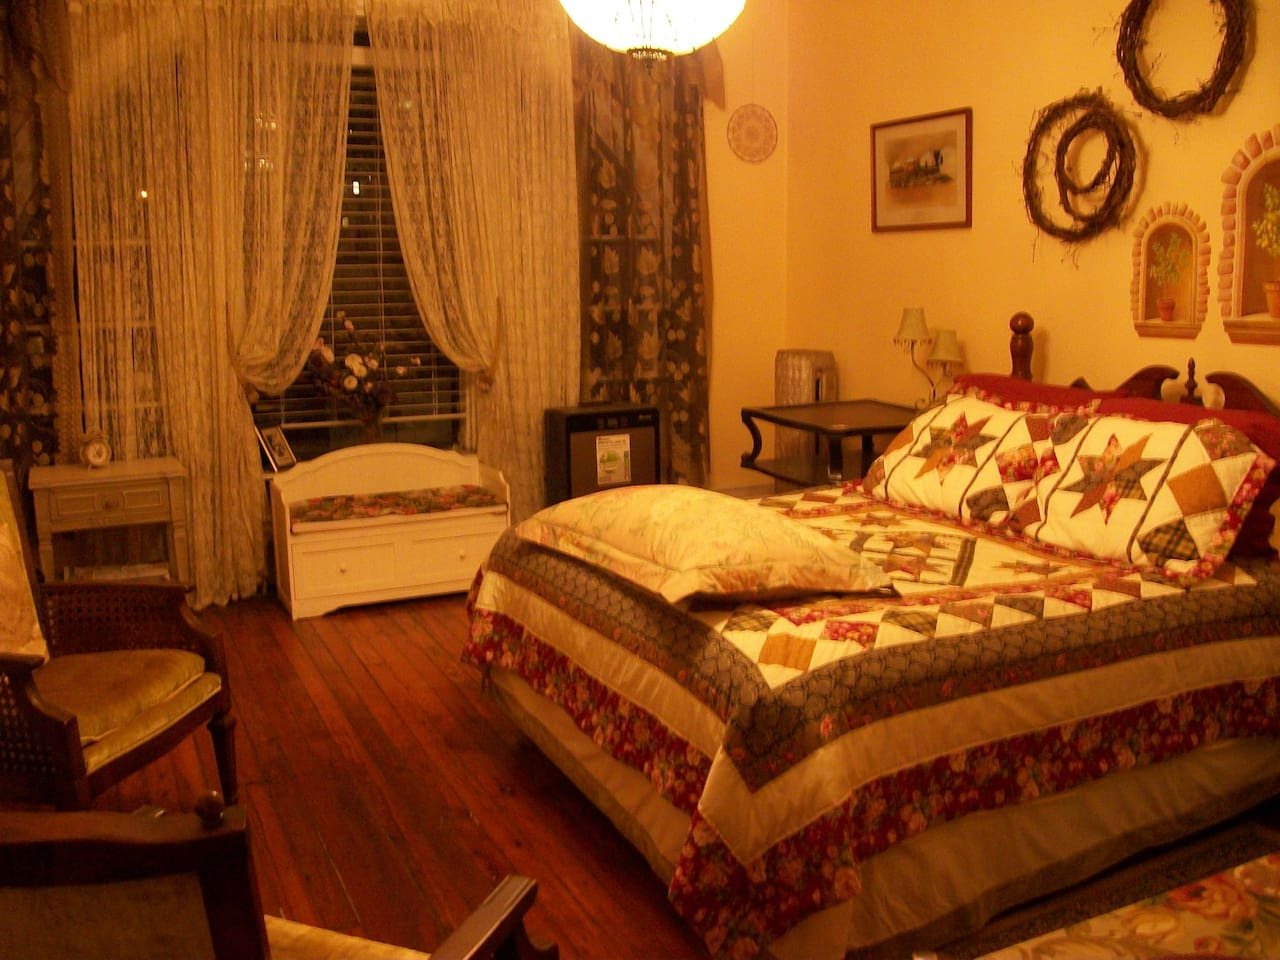 Main room, ueen size bed, desk, chairs, panoramic cathedral window overlooks small park